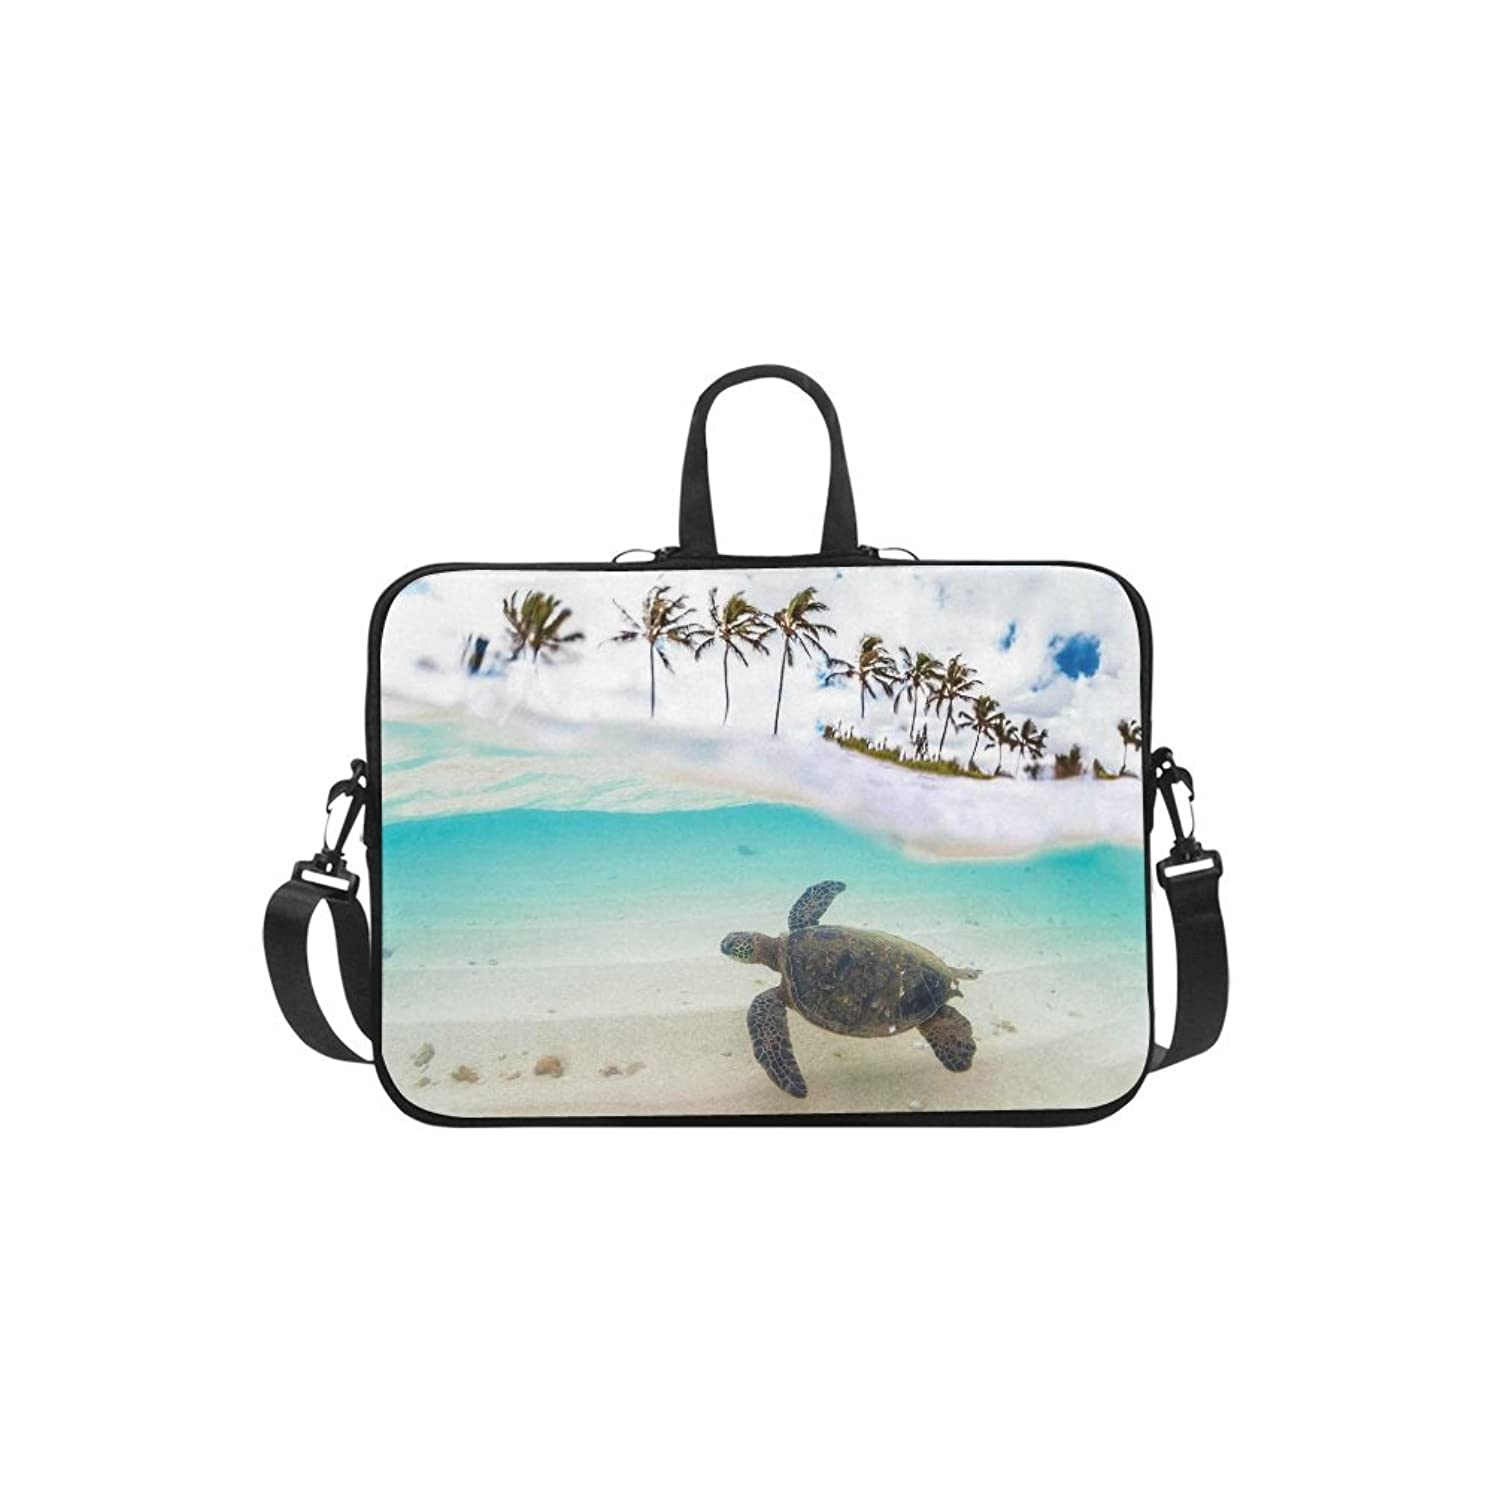 InterestPrint Tropical Palm Tree Sea Turtle Shoulder Strap Computer Bag, Summer Sandy Beach Neoprene Laptop Sleeve Case Cover for 15.6 Inch for MacBook Pro Air Dell HP Lenovo Thinkpad Acer Ultrabook